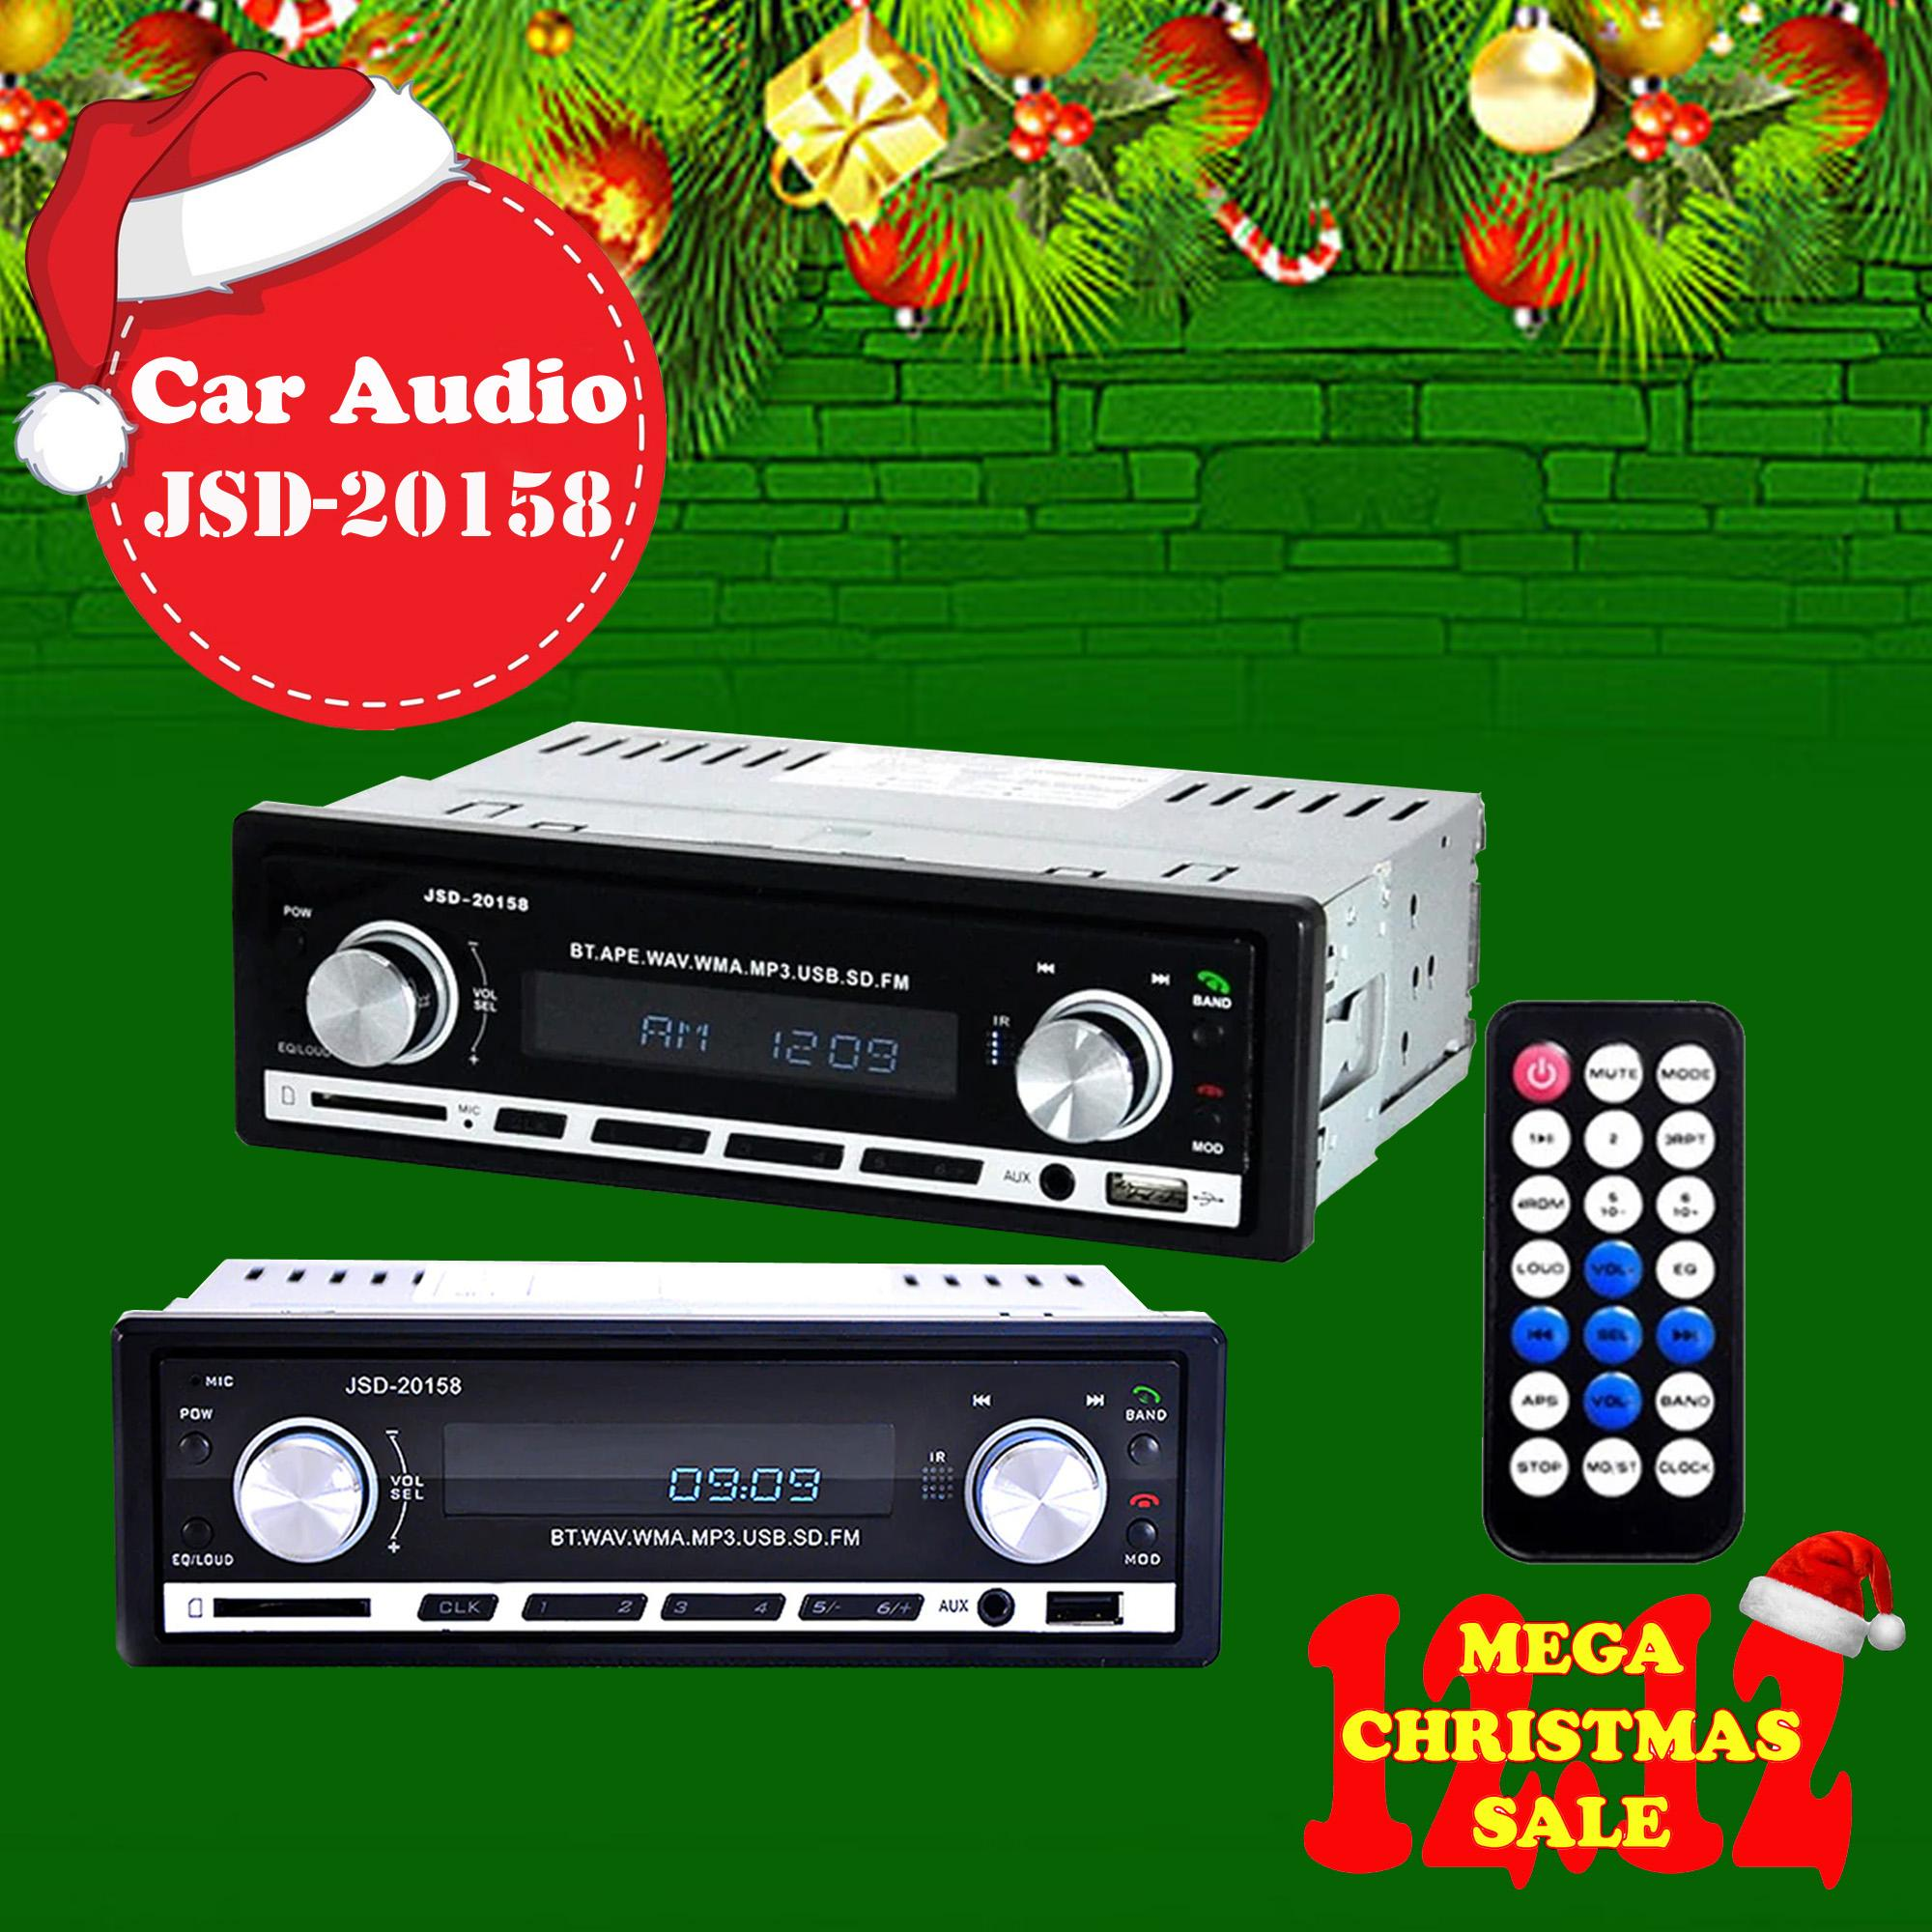 Car Stereo For Sale Cars Online Brands Prices Stand Art Jeep Radio Wiring Diagram Only Cwl Jsd 20158 Mp3 Player Usb Sd Aux Audio 1 Din